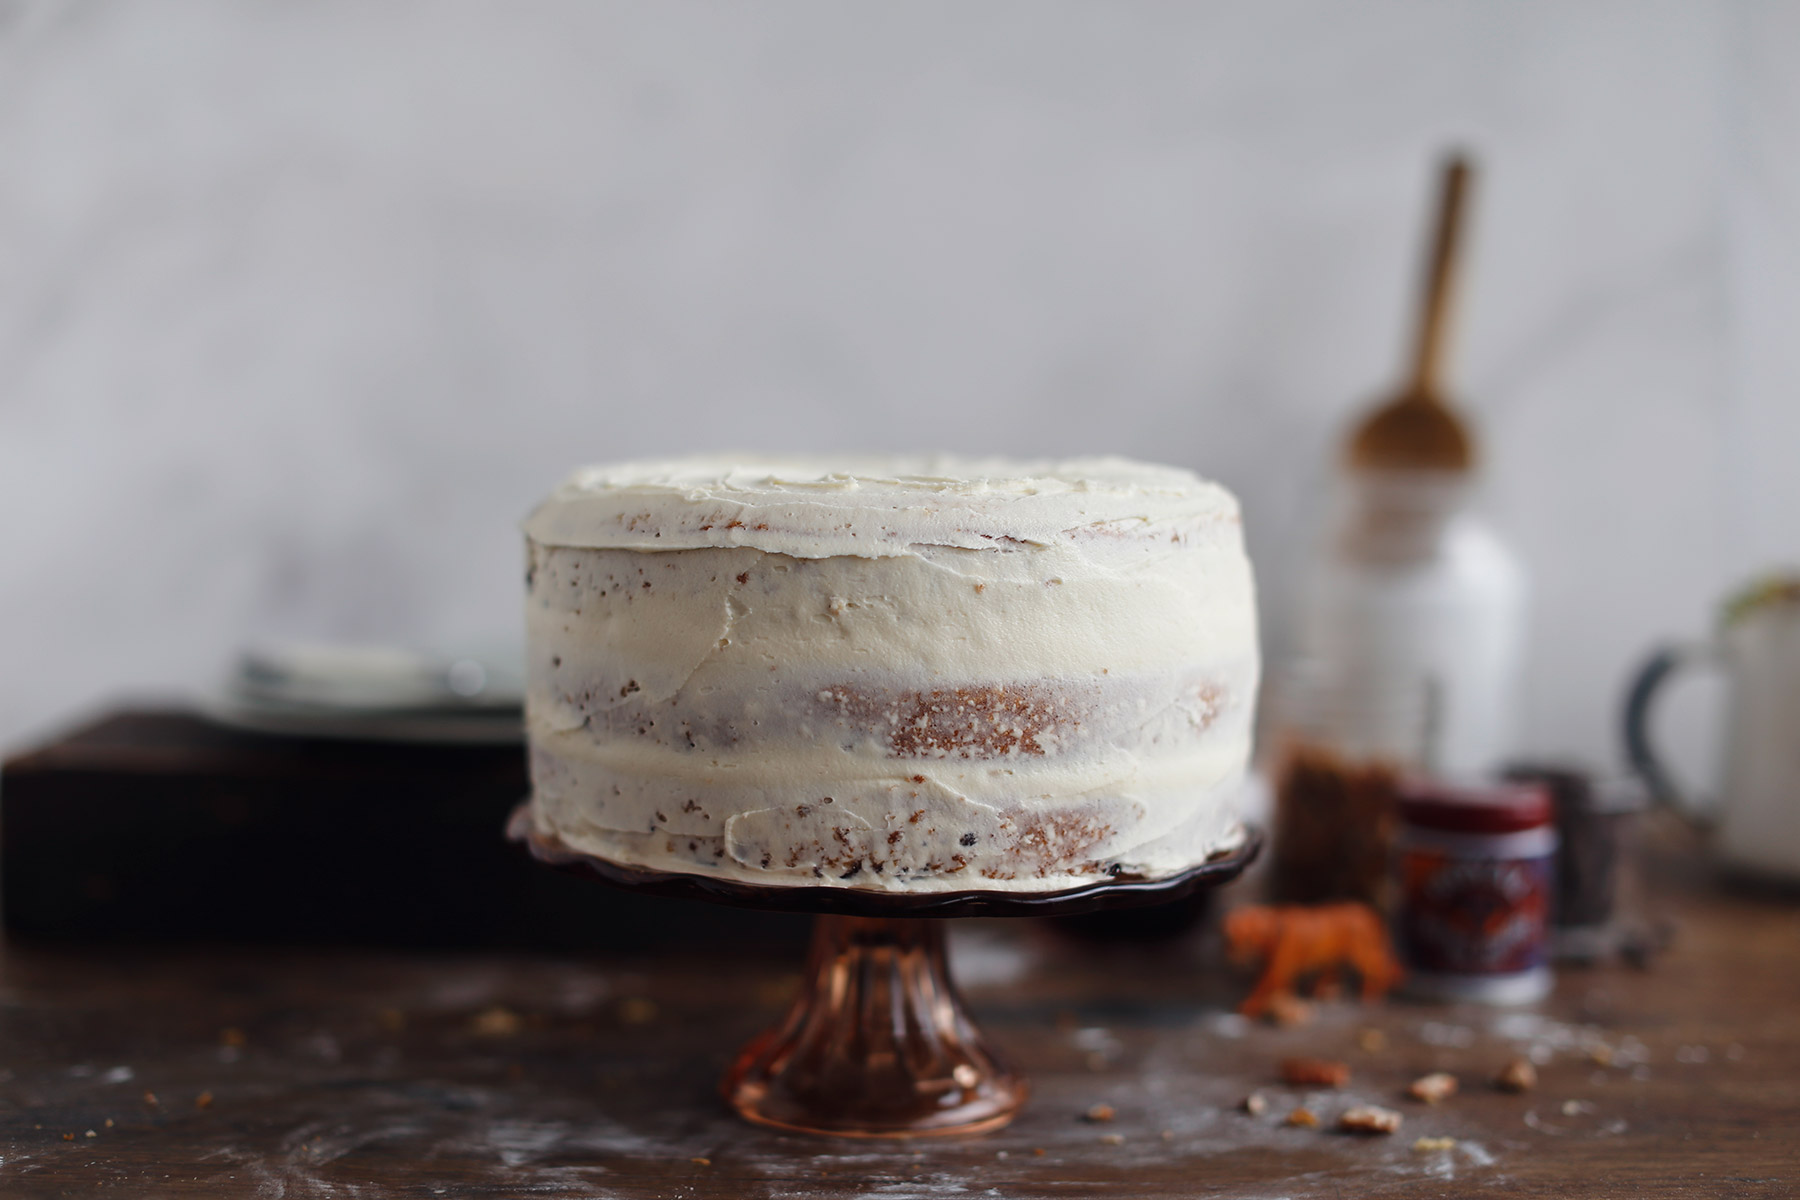 Pecan-Nut,-Chocolate-and-Maple-Syrup-Layer-Cake-8